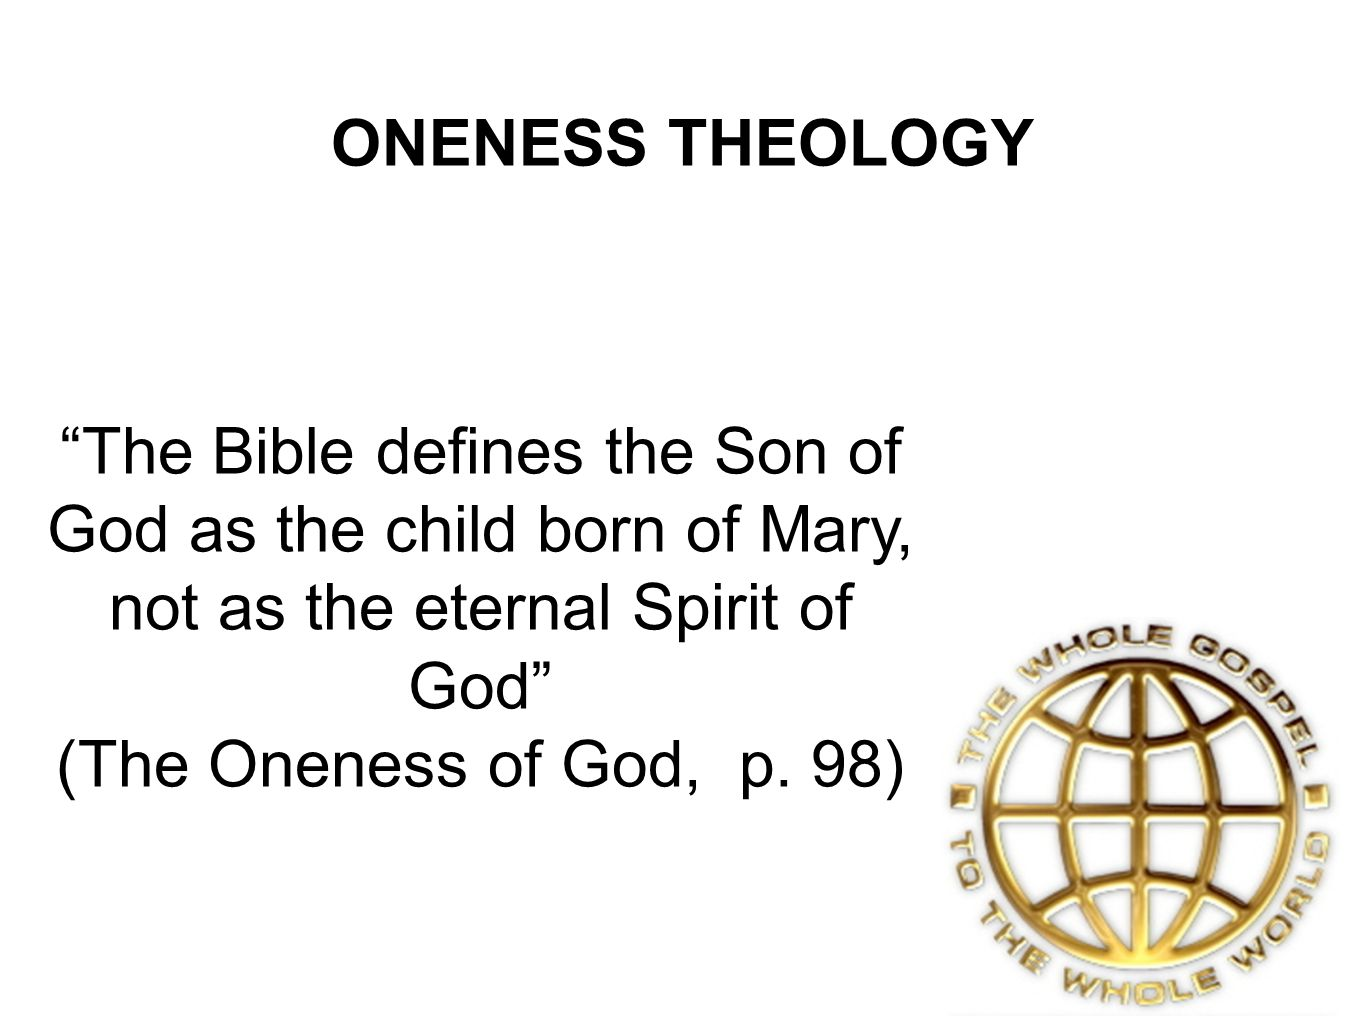 ONENESS THEOLOGY The Bible defines the Son of God as the child born of Mary, not as the eternal Spirit of God (The Oneness of God, p.